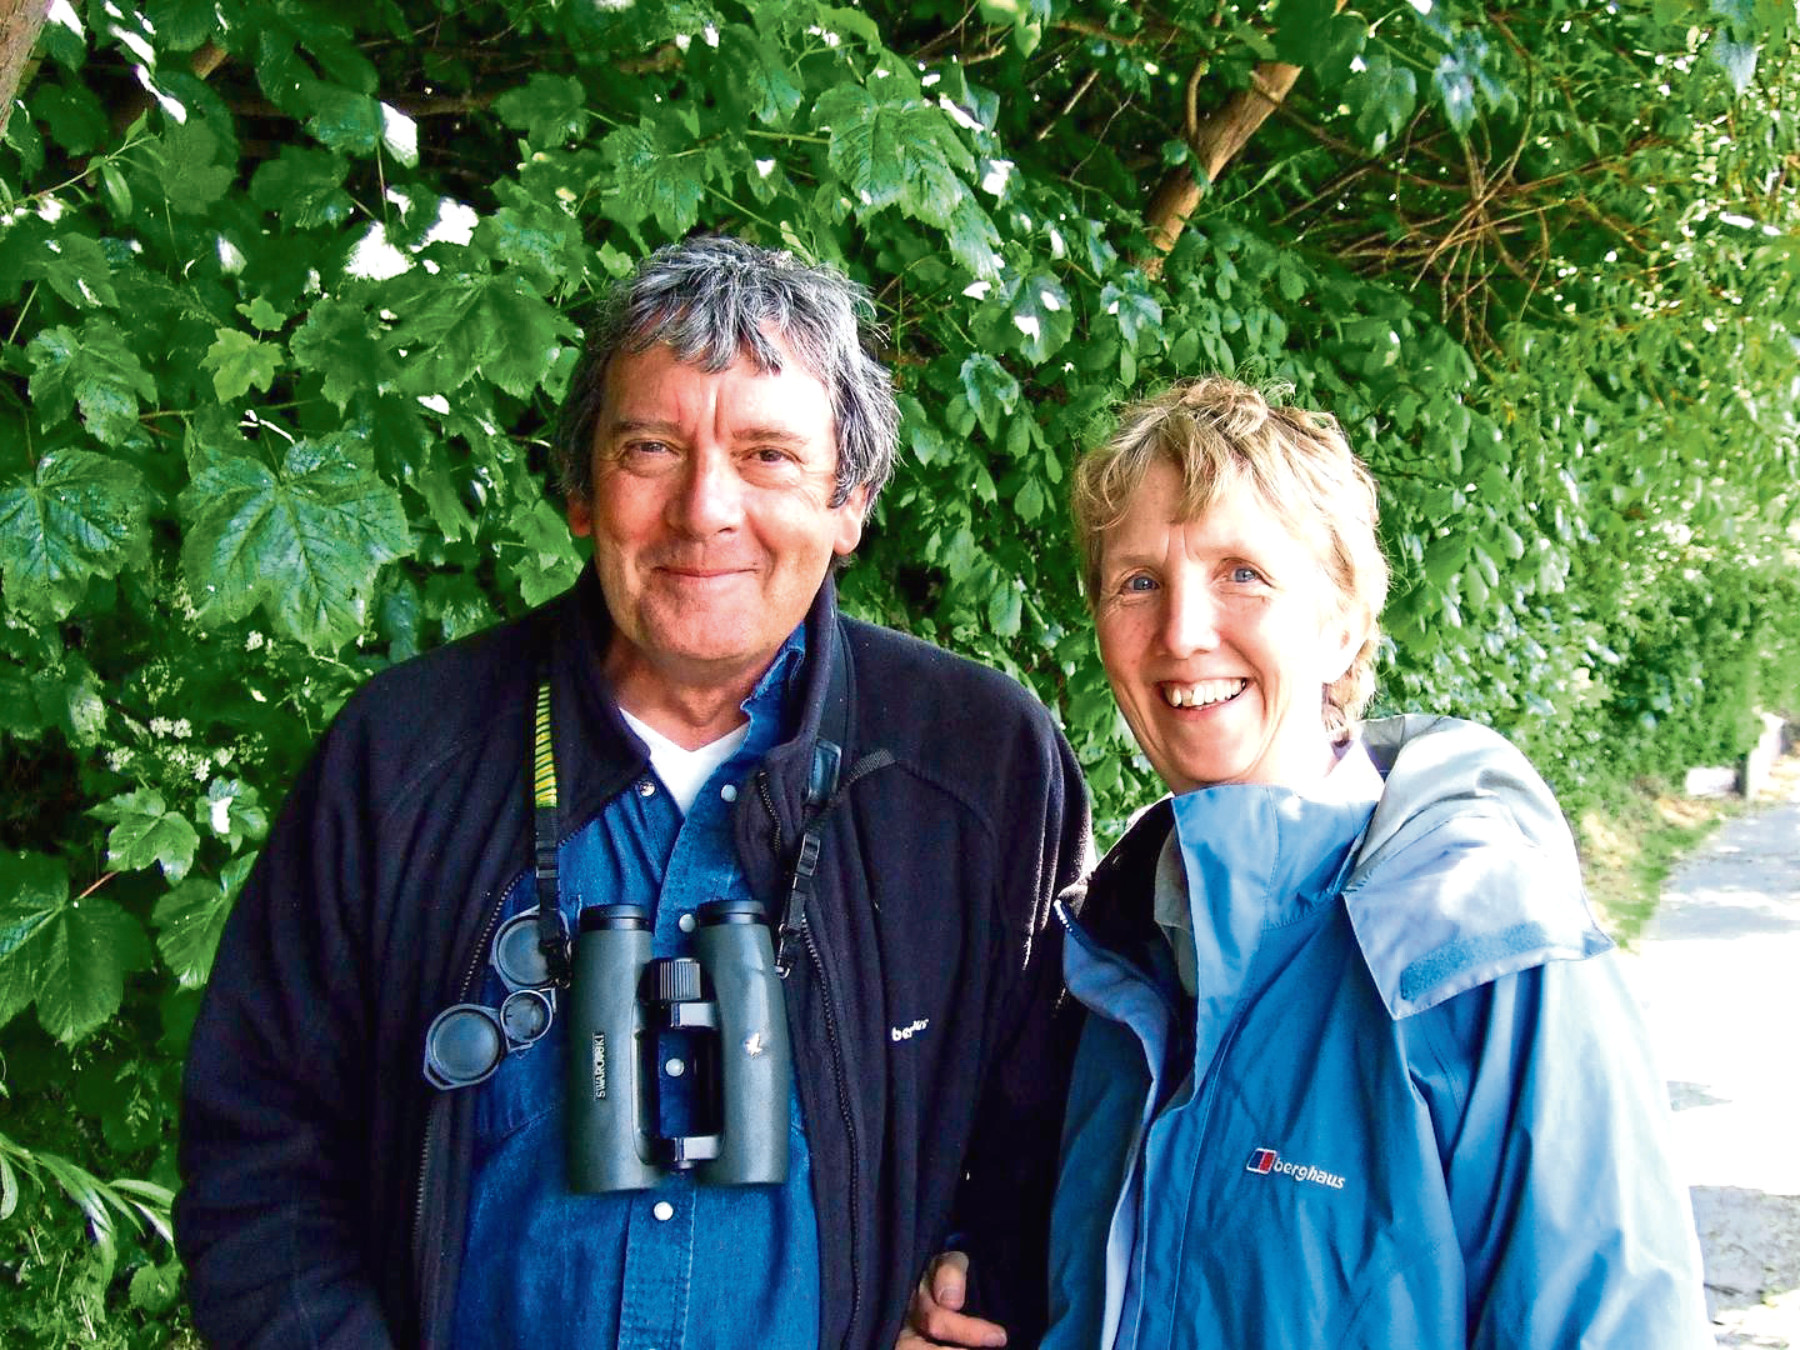 Ann Cleeves with husband Tim.